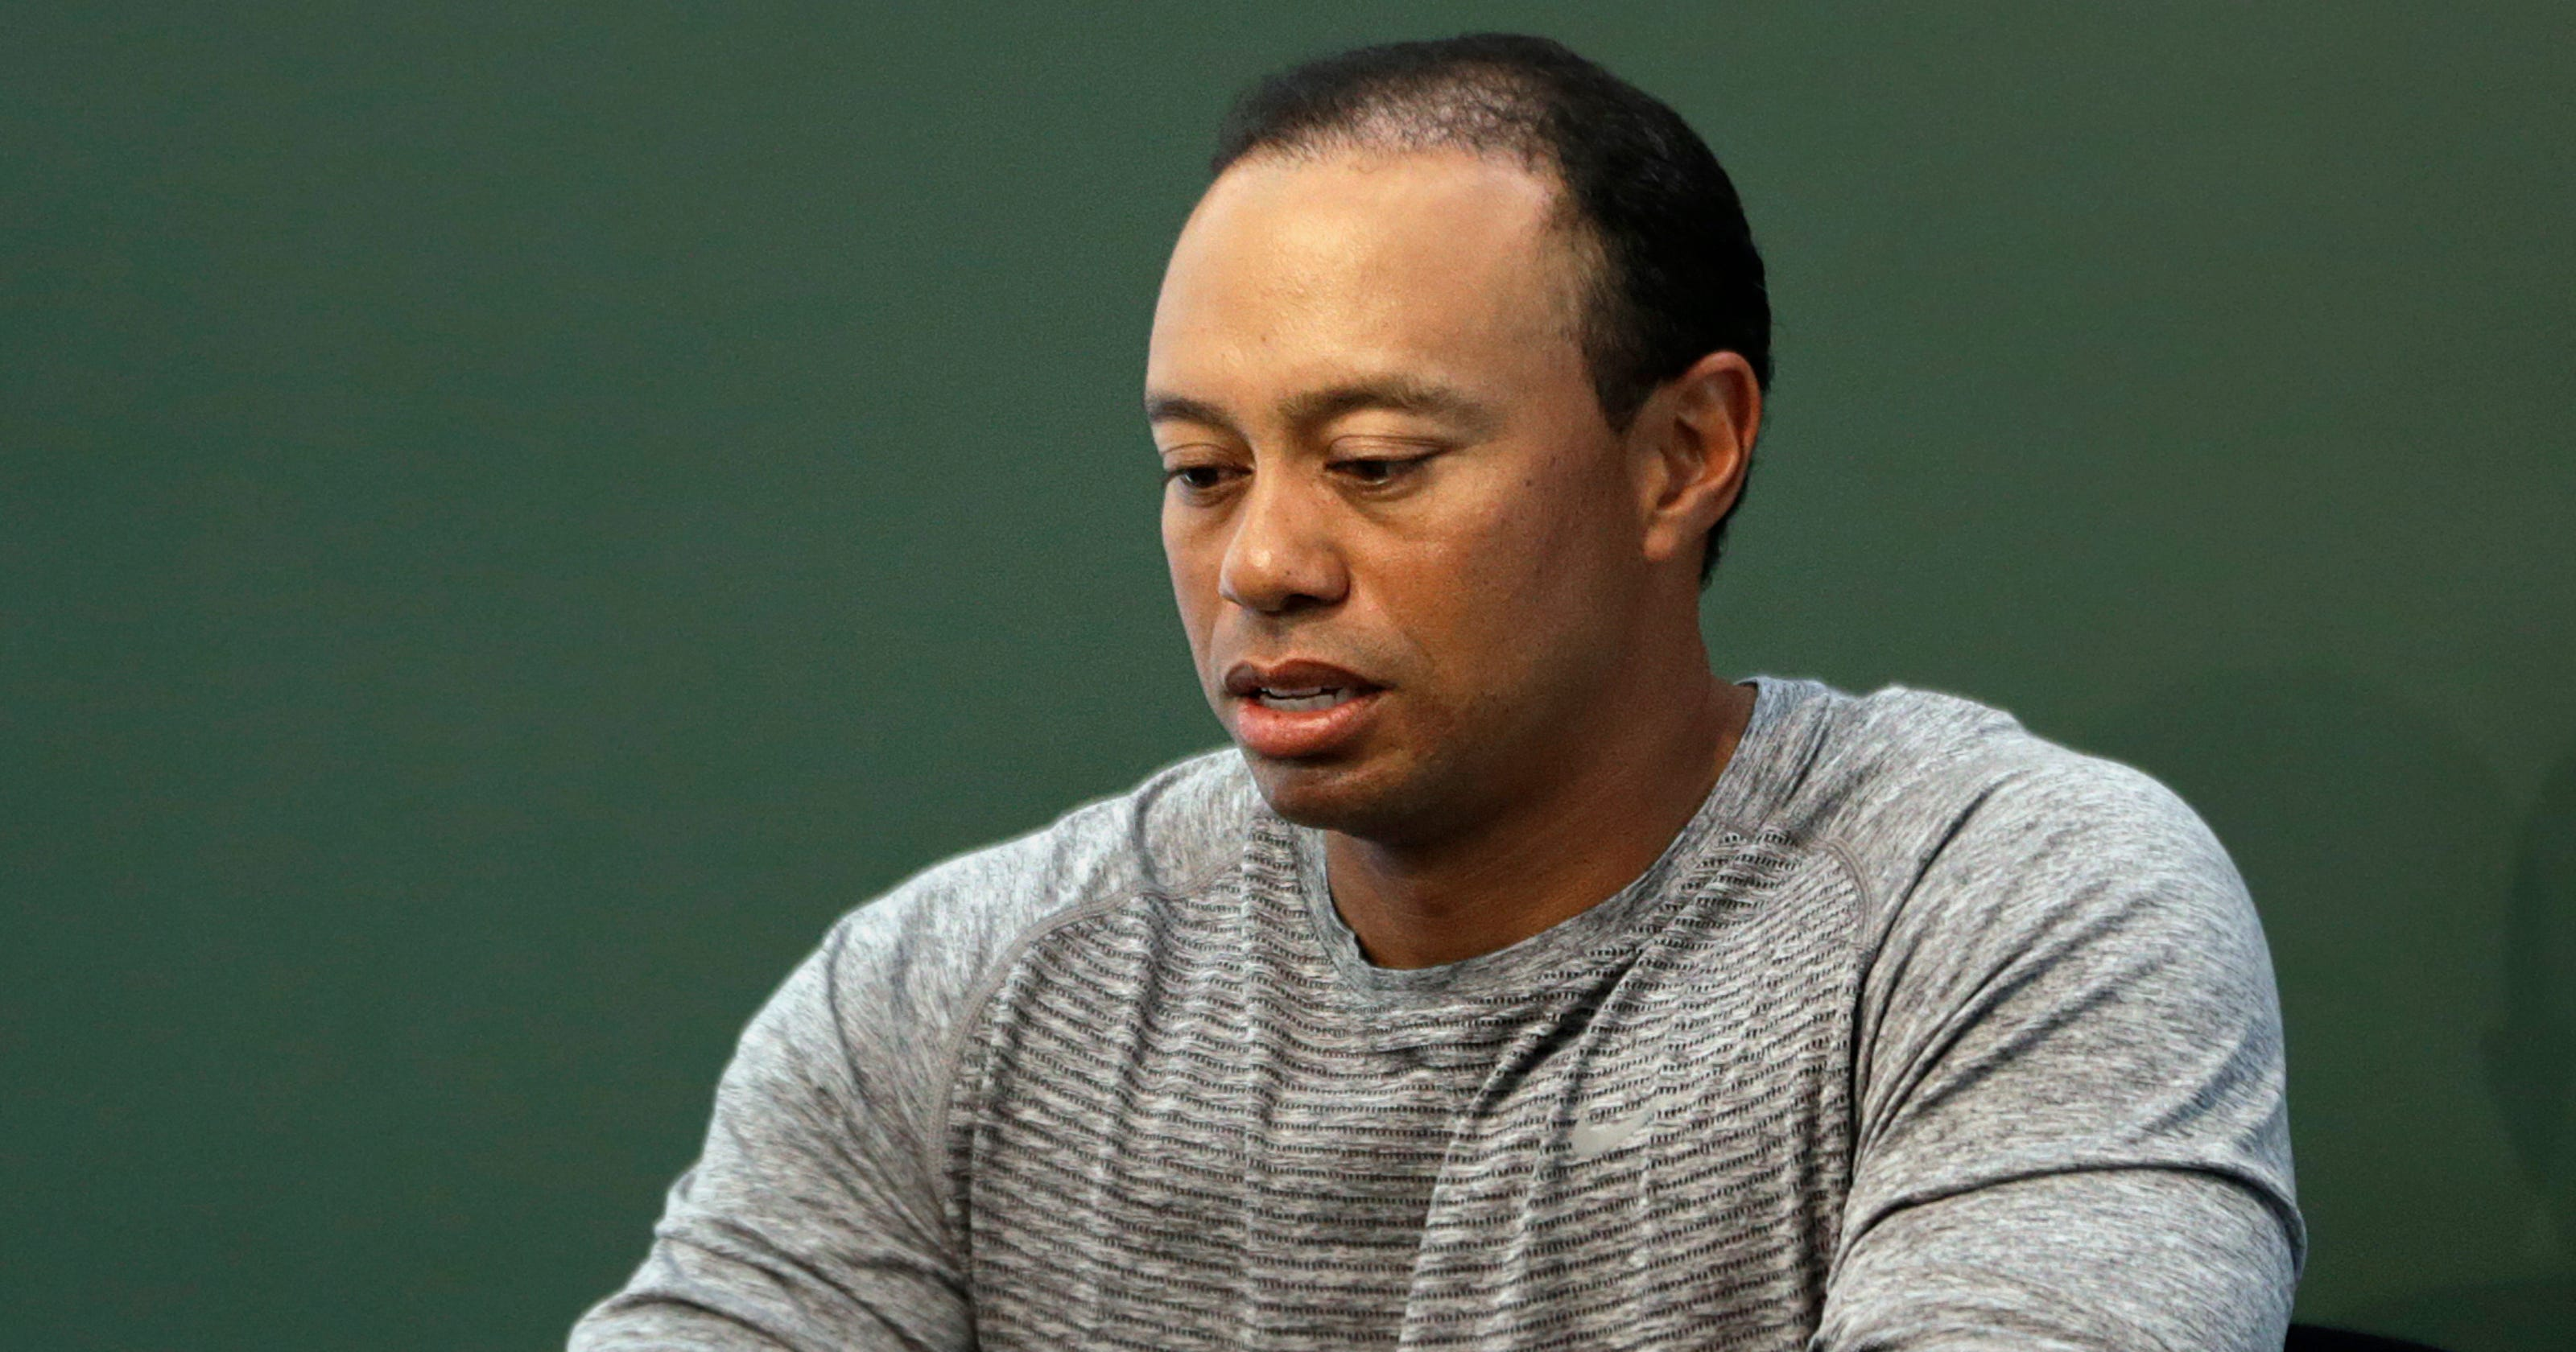 Tiger Woods: What rules does he likely face in DUI diversion